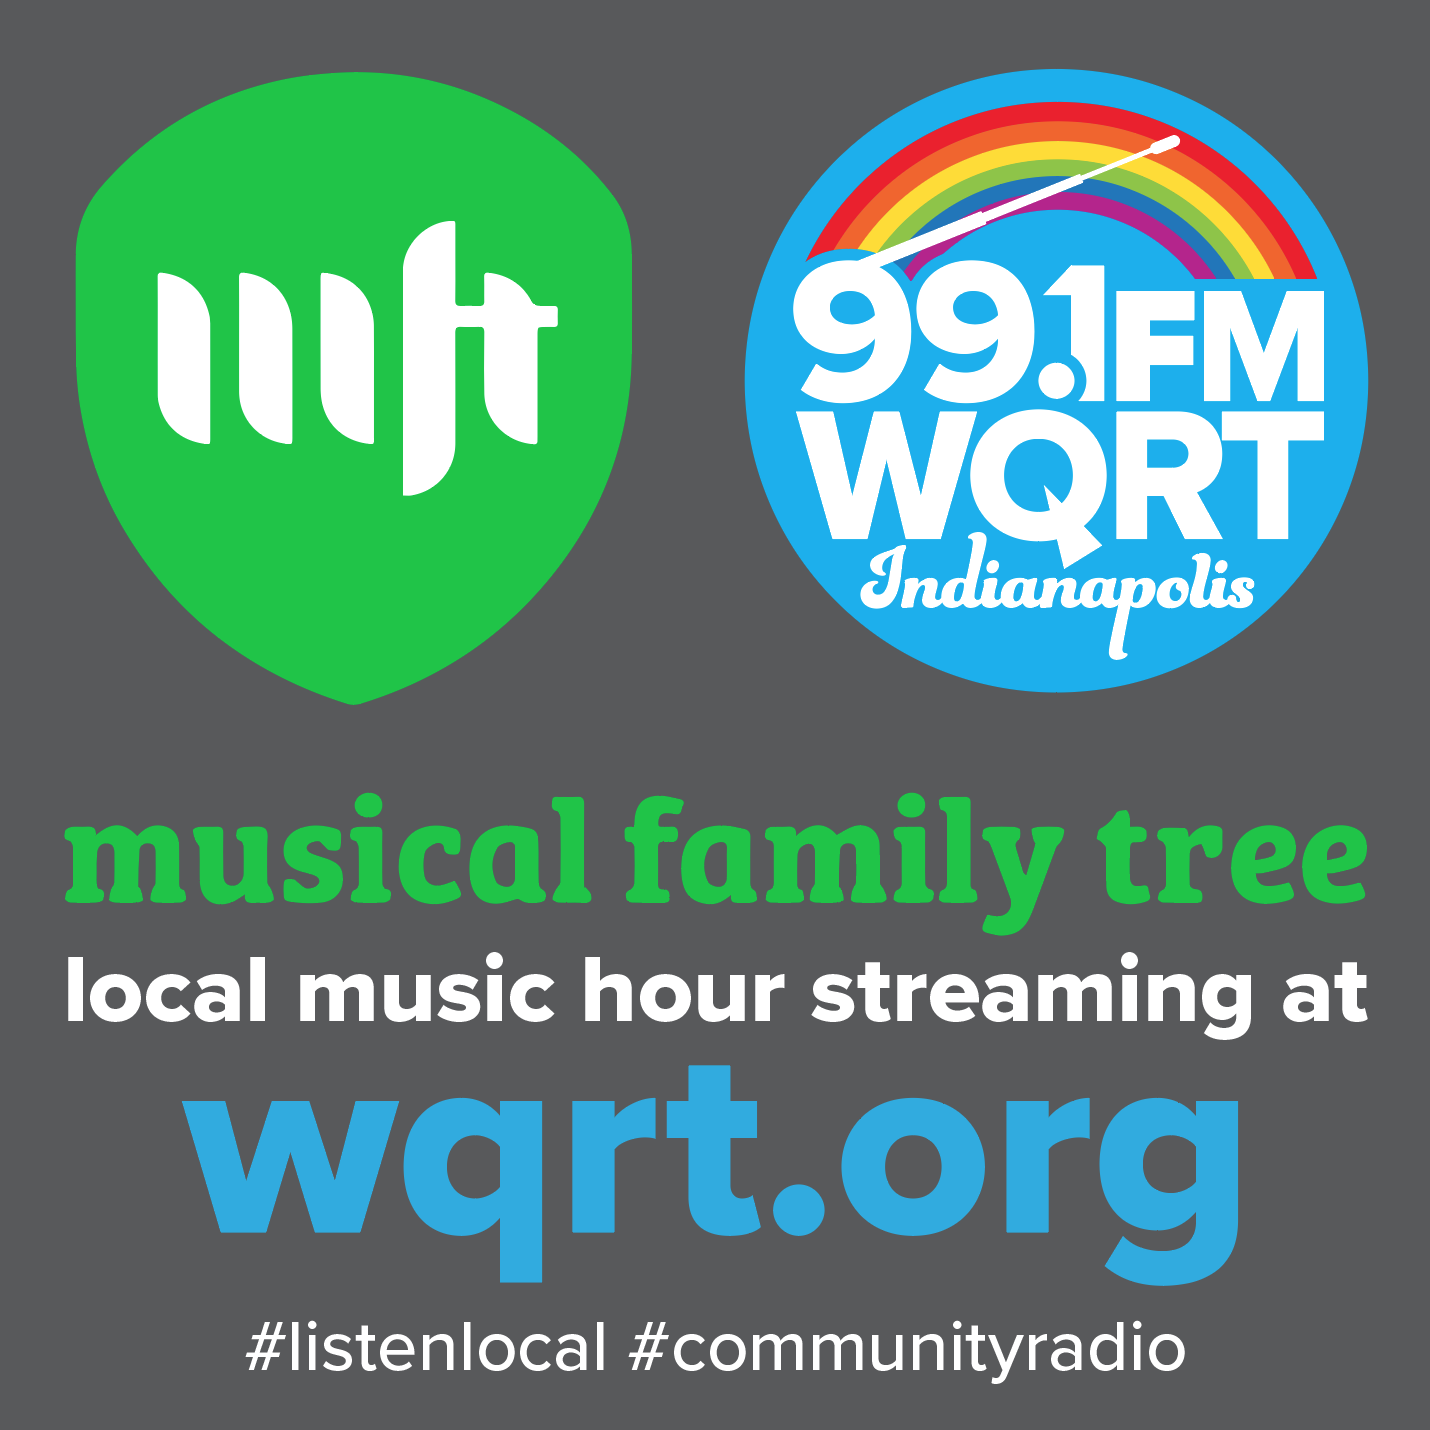 Local Music Hour by Musical Family Tree - LIVE Thursdays at 7pmLocal non-profit and Indiana music archive spotlighting musicians, interviews, and events across Indiana.Visit MFT's site here.